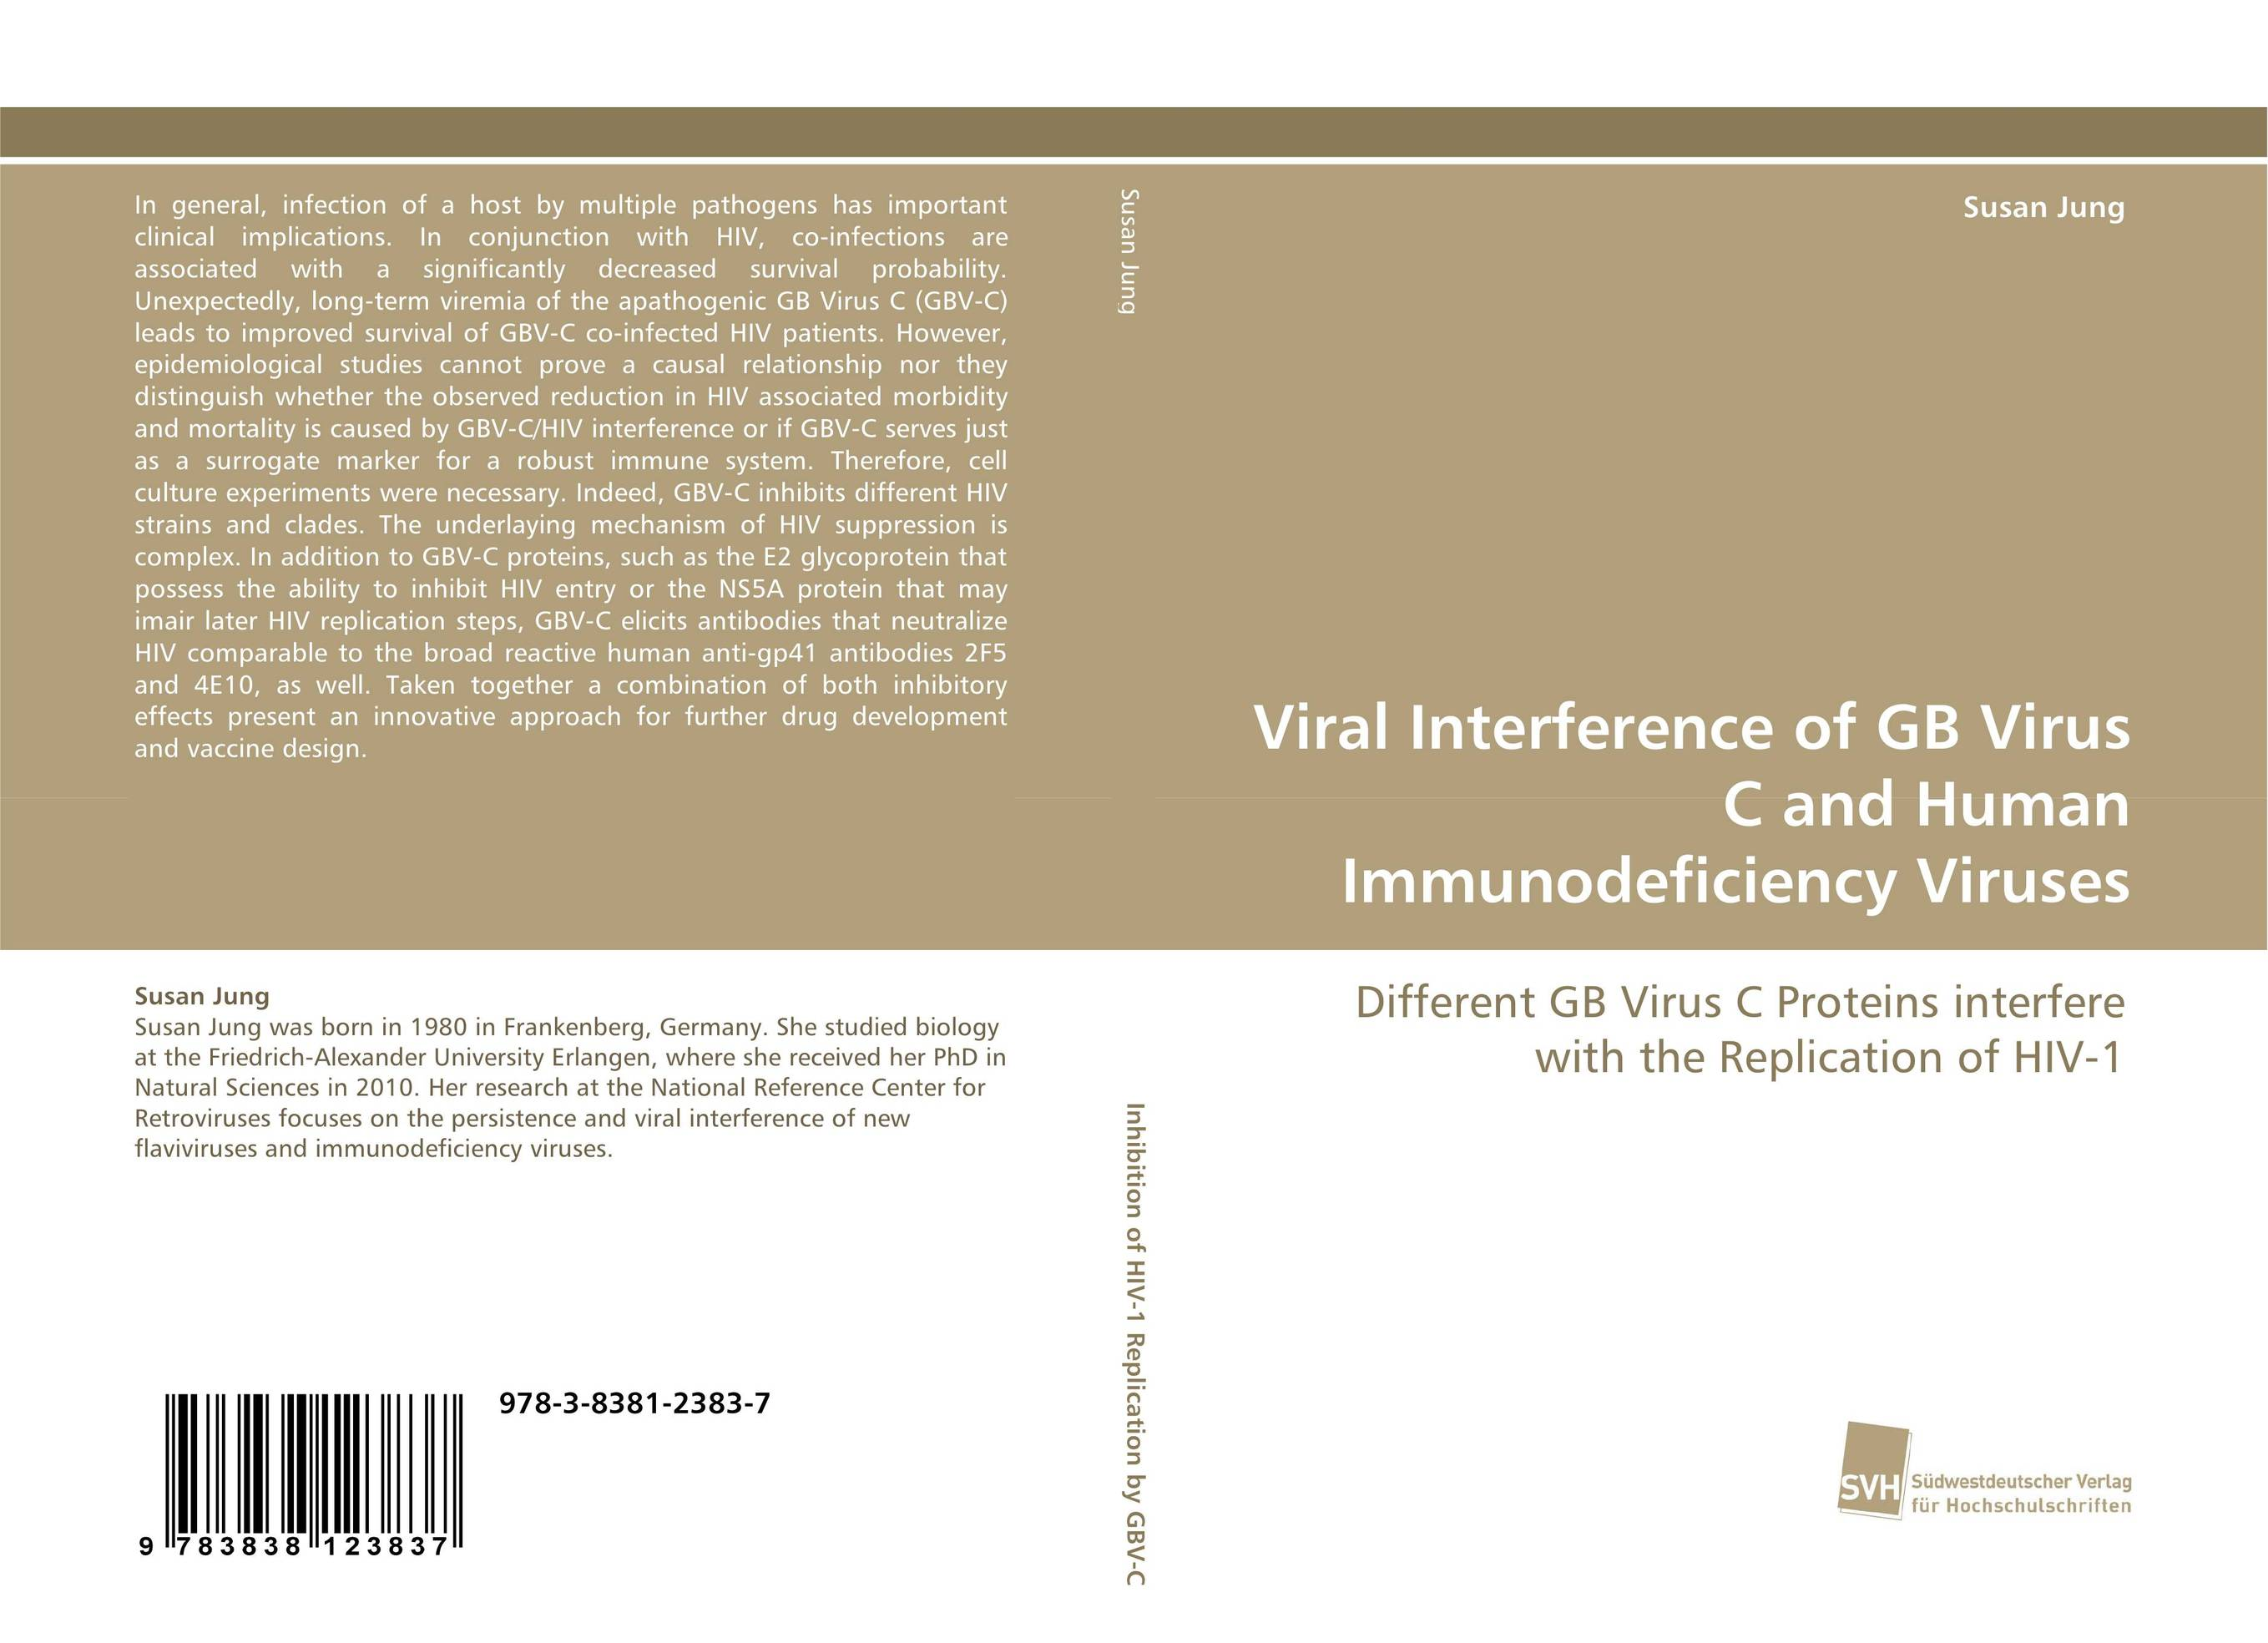 Viral Interference of GB Virus C and Human Immunodeficiency Viruses viruses cell transformation and cancer 5